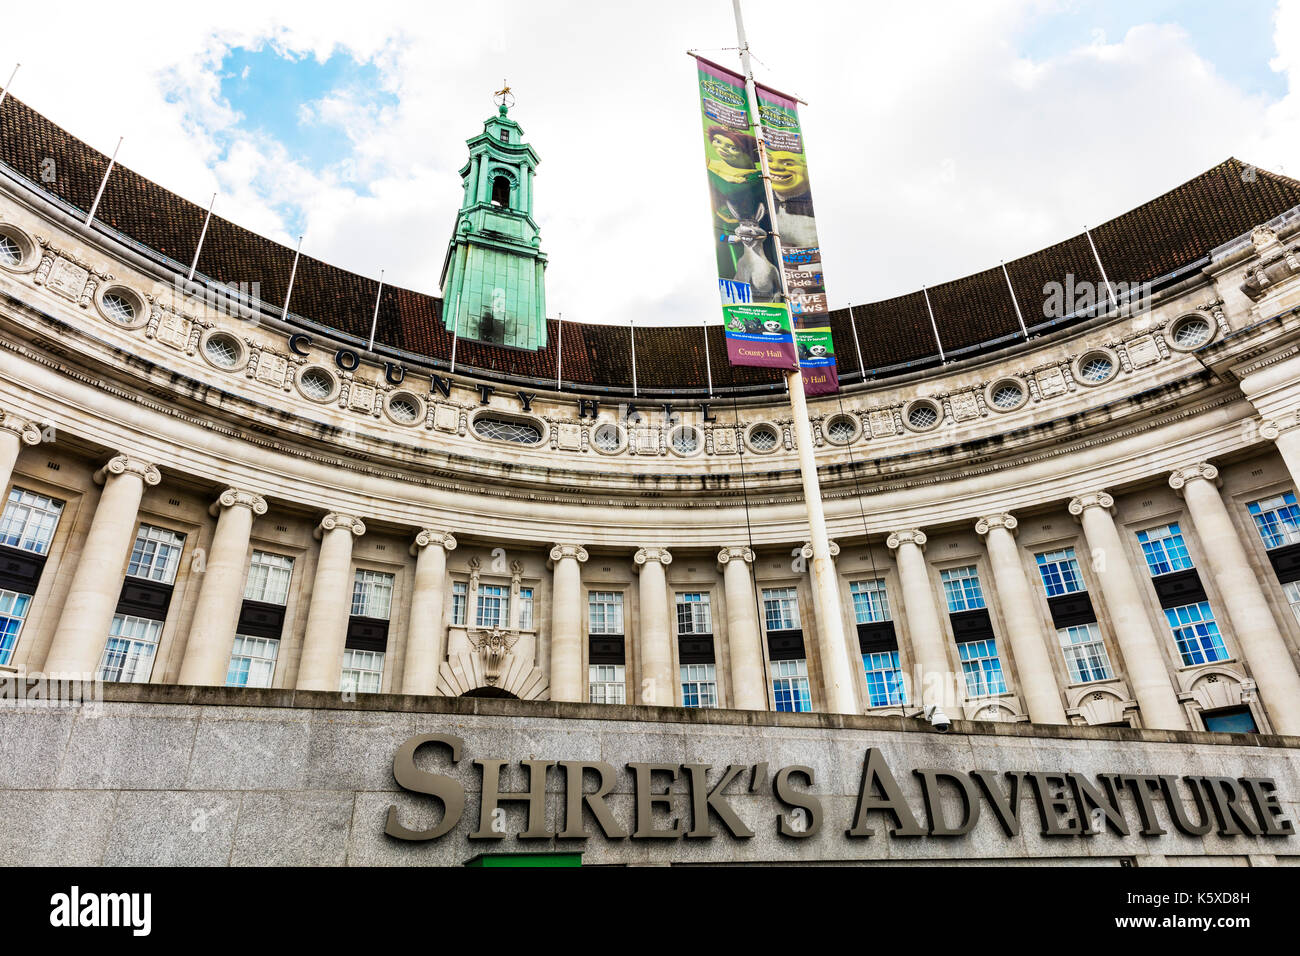 Shrek's Adventure London UK, Shrek's Adventure, Shrek's Adventure building, Shrek's Adventure tourist attraction at County Hall on London's South Bank - Stock Image